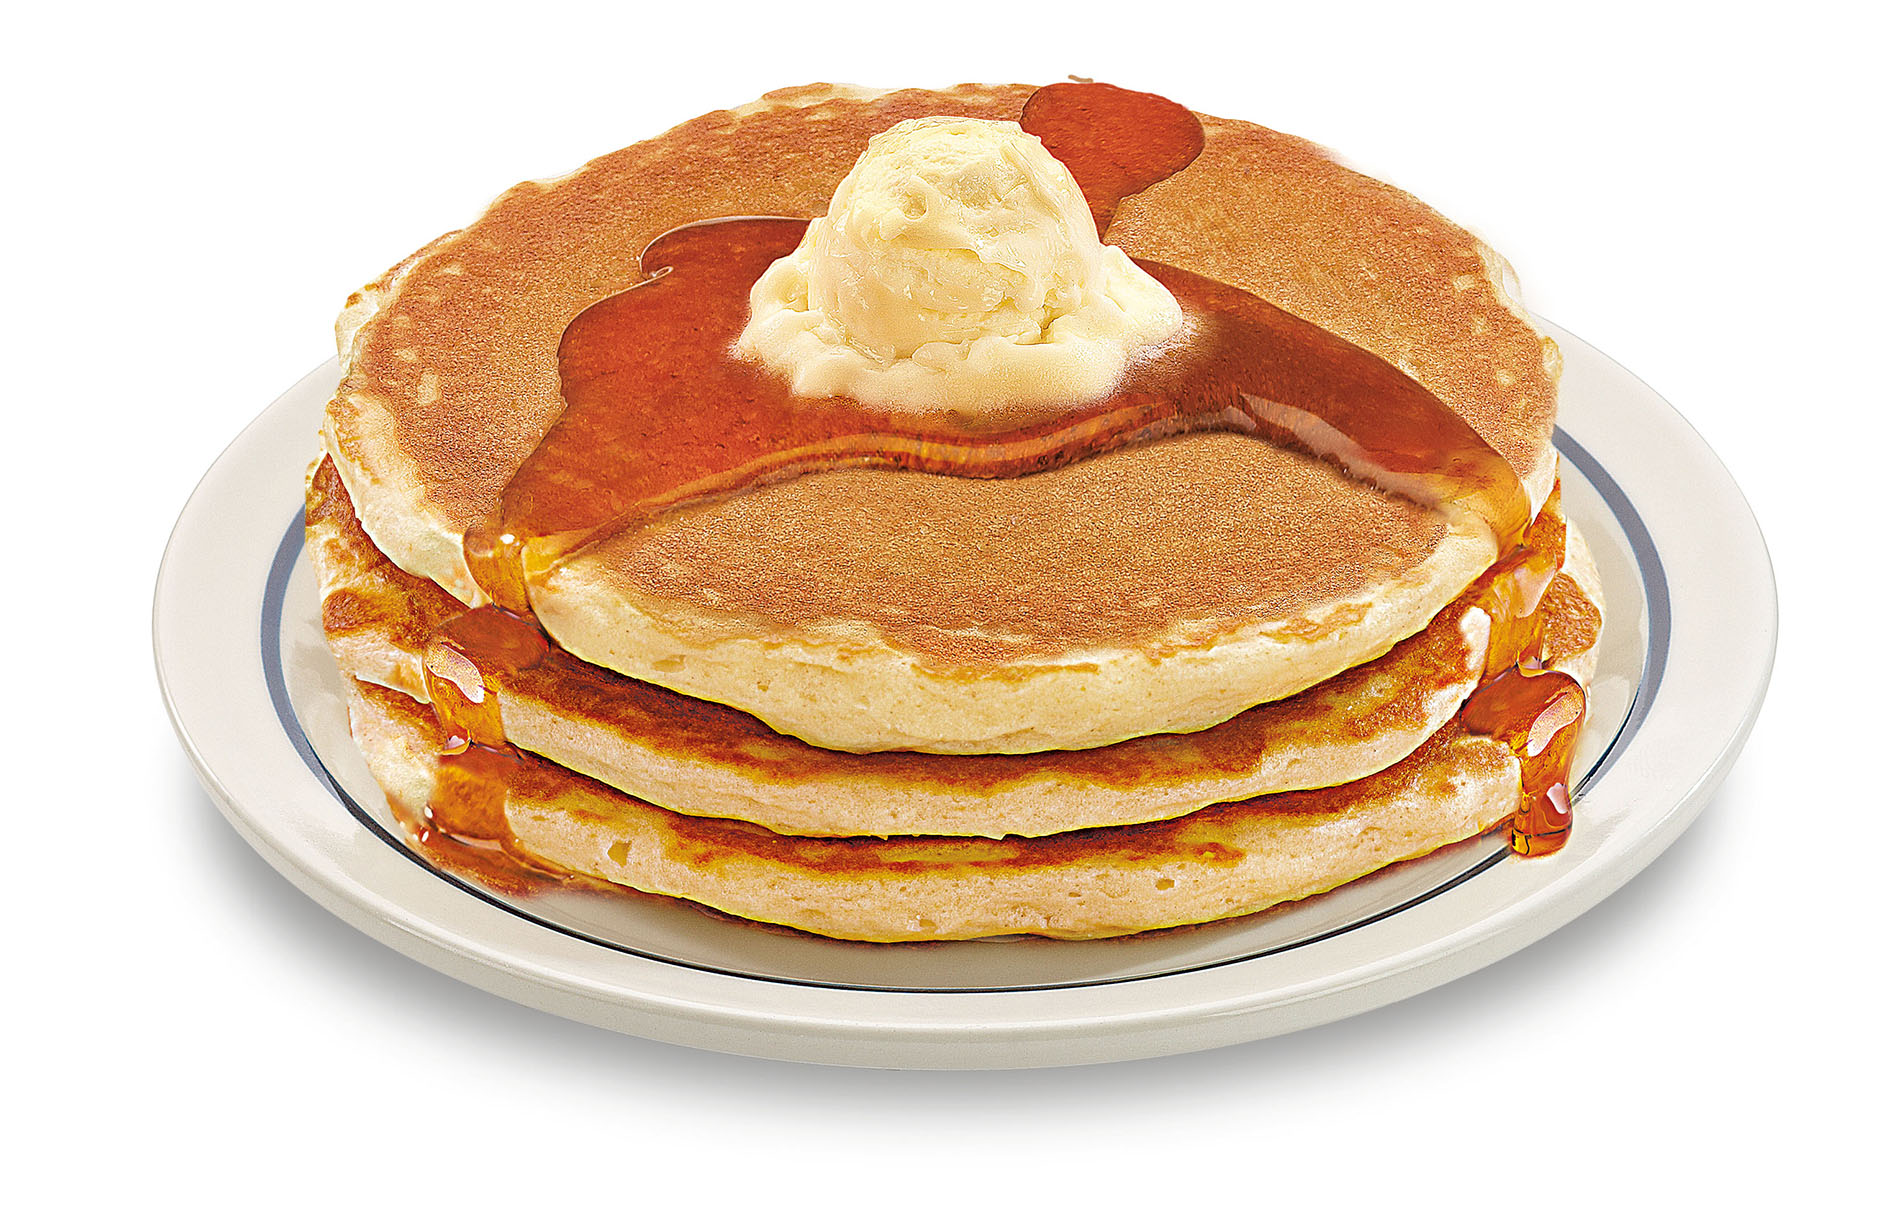 On August 23, from 7 a.m. to 7 p.m., IHOP will offer short stacks of its original Buttermilk Pancakes for only $1 with all proceeds benefitting No Kid Hungry to help end childhood hunger in America.